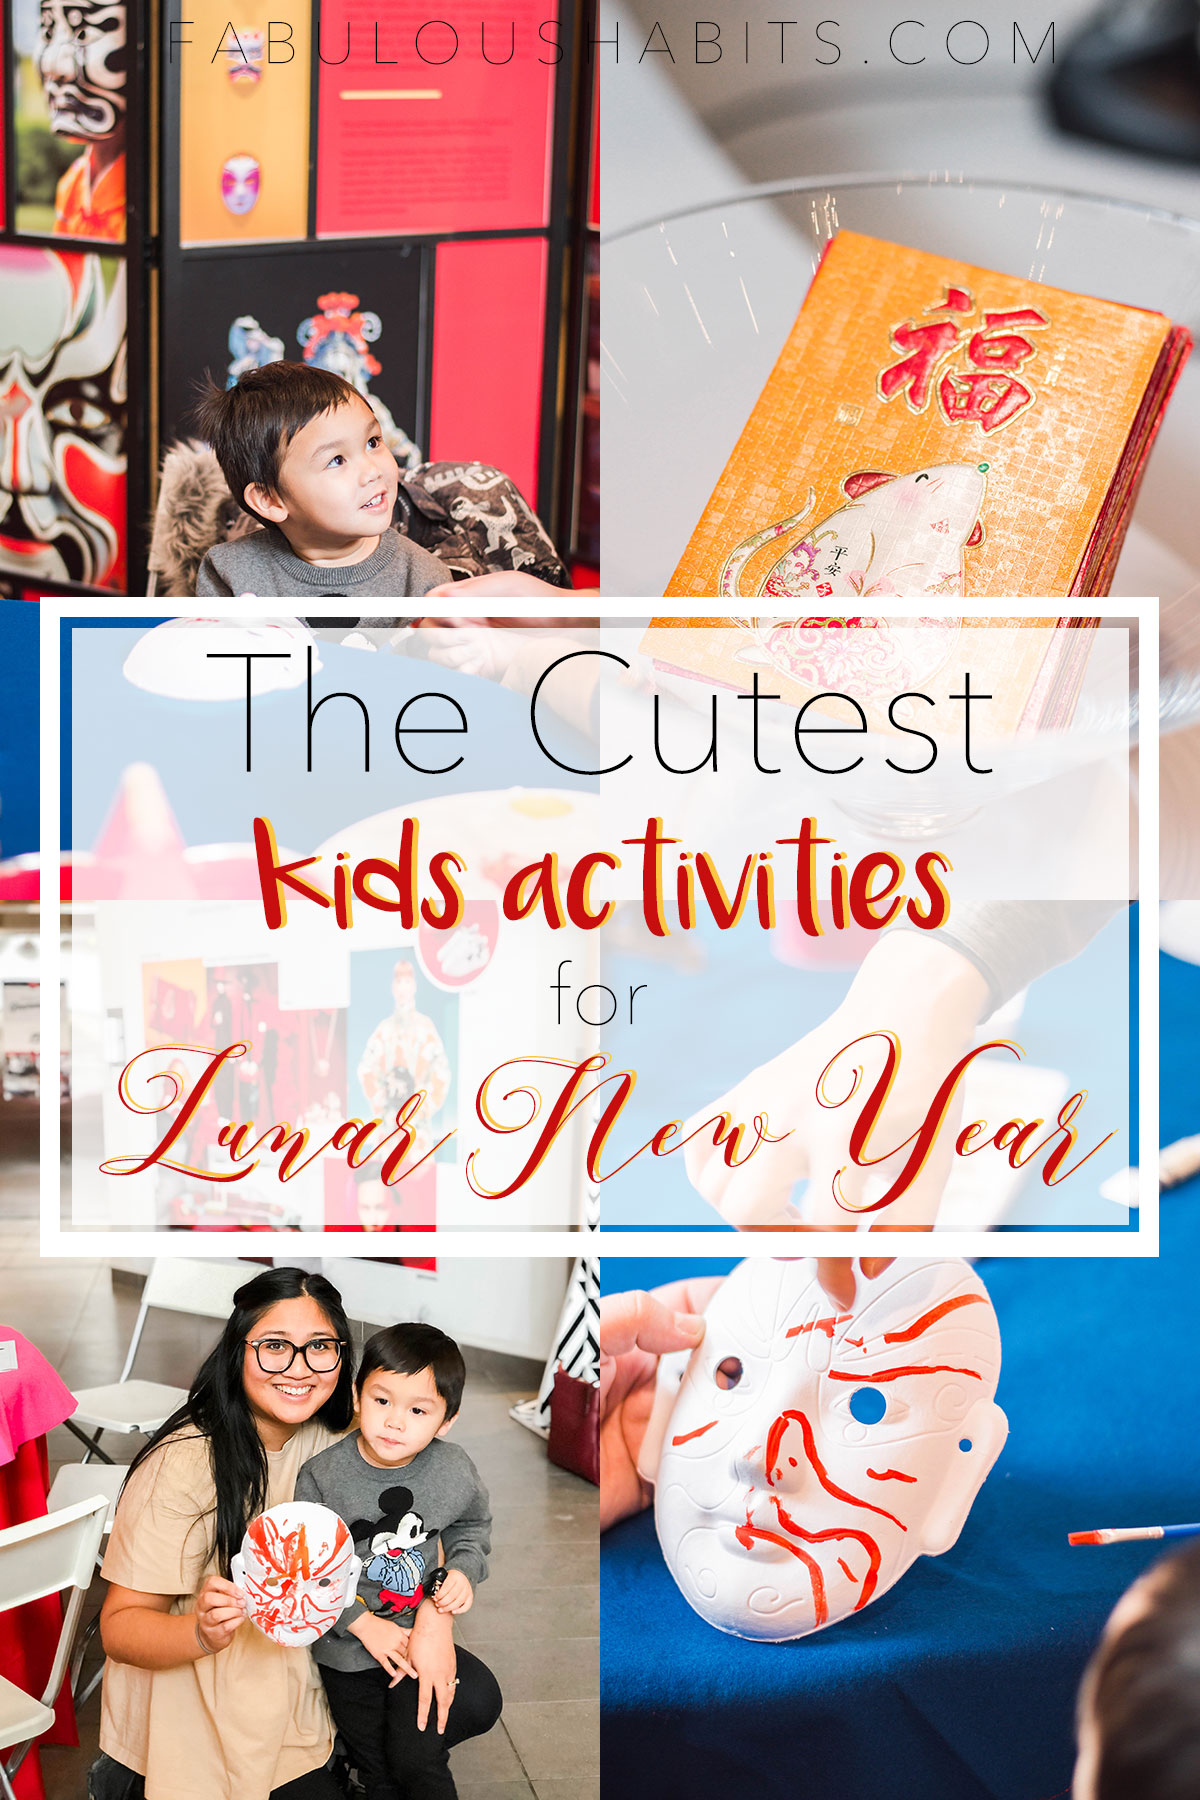 Celebrating Lunar New Year is tons of fun for the entire family. Check out these kid-friendly activities to celebrate the beautiful festivities. #lunarnewyear